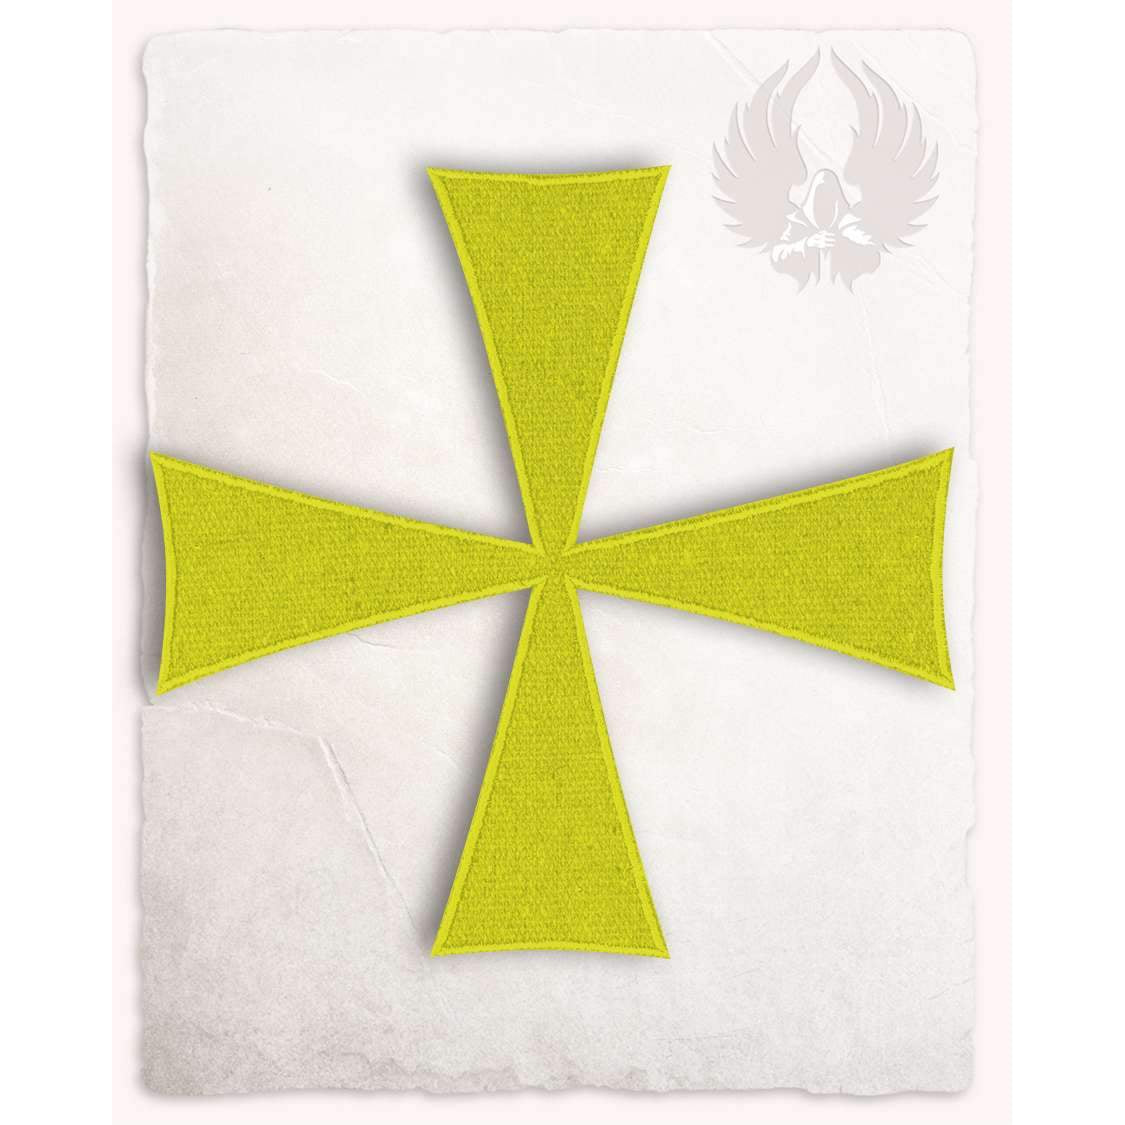 Templars cross patch